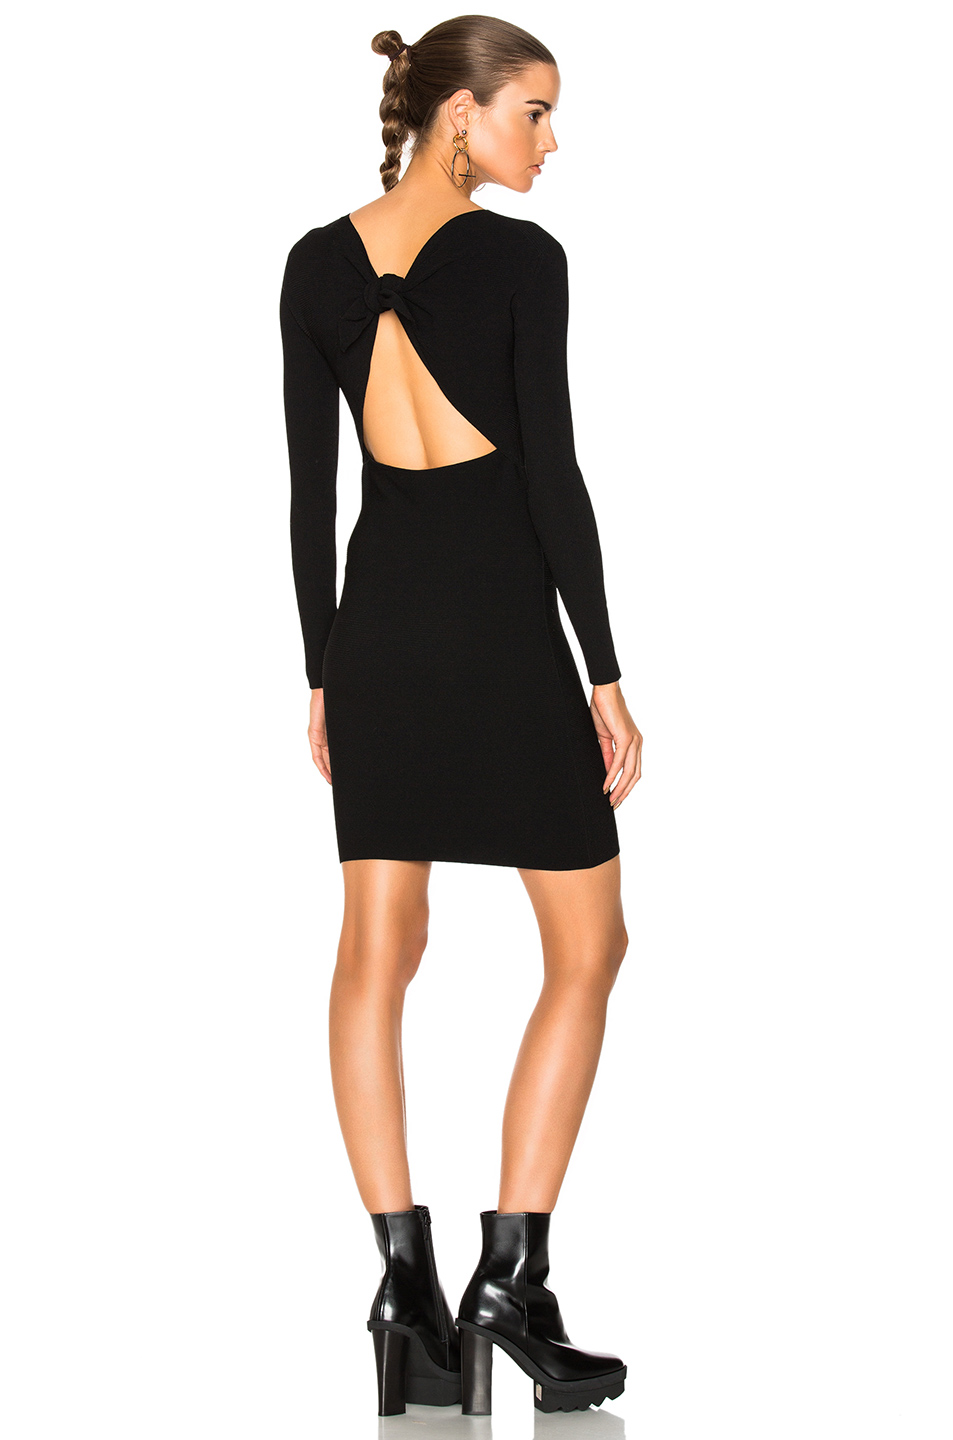 Helmut Lang Tie Back Dress in Black